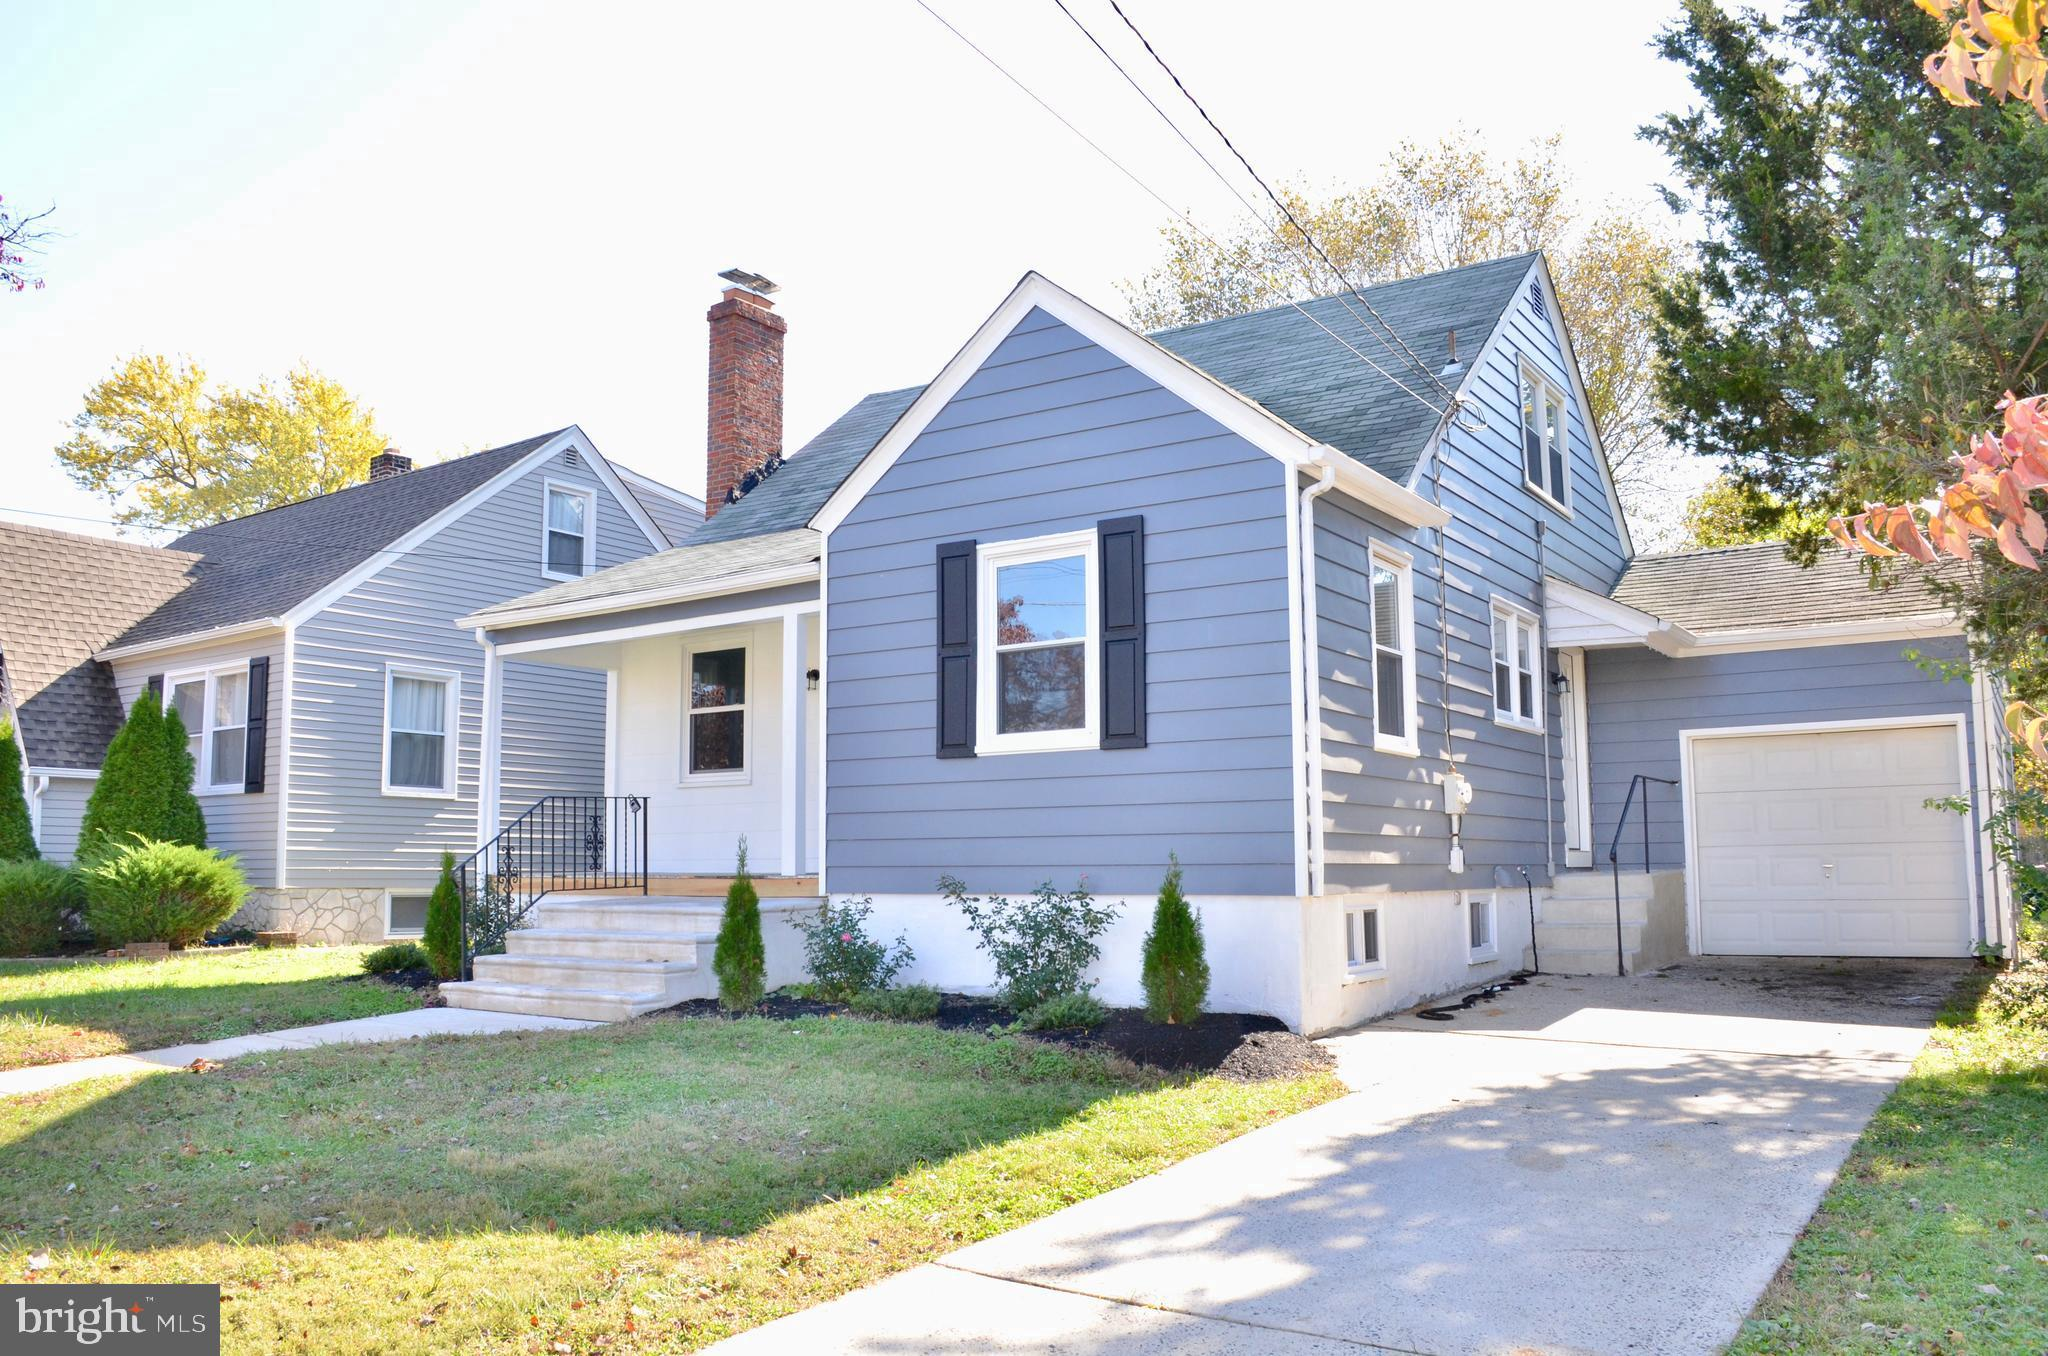 24 4TH AVENUE, MOUNT EPHRAIM, NJ 08059